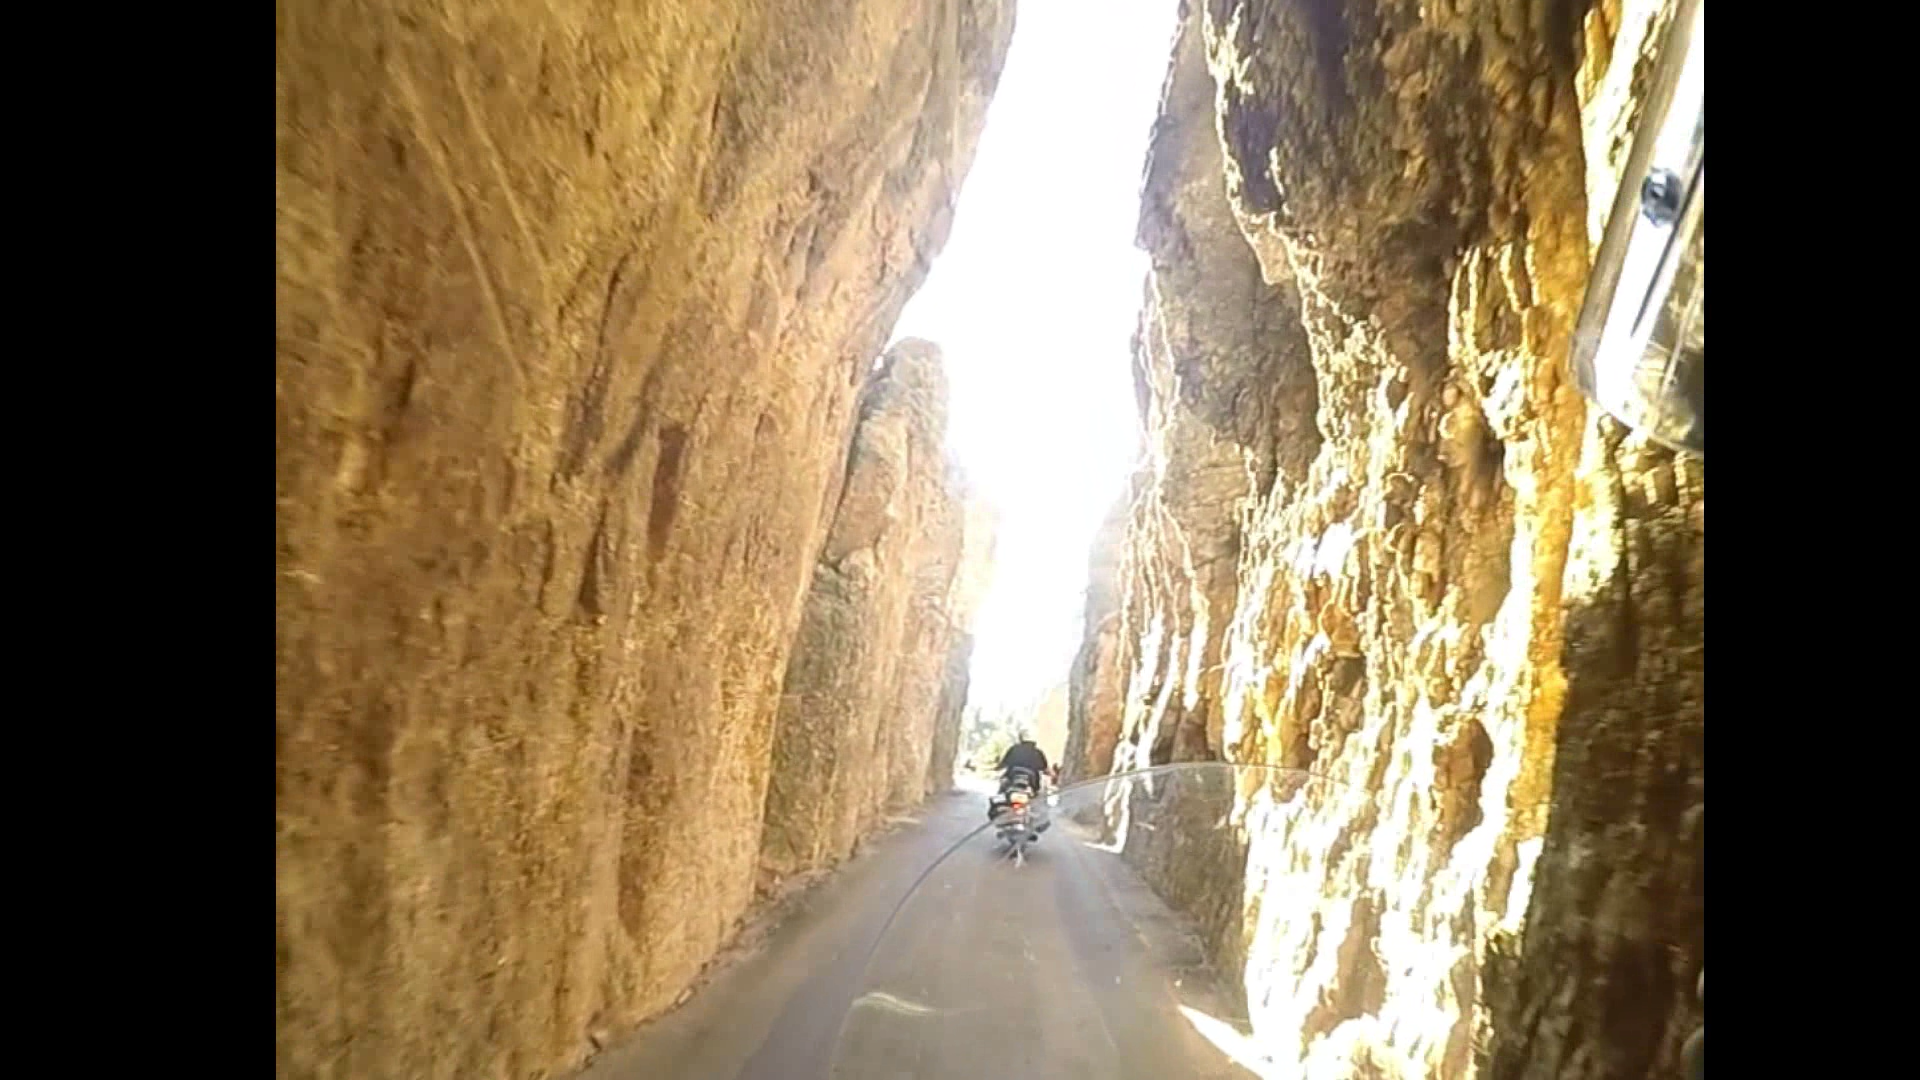 The scenic and curvy Needles Highway comes with narrow tunnels and steep cliff sides.